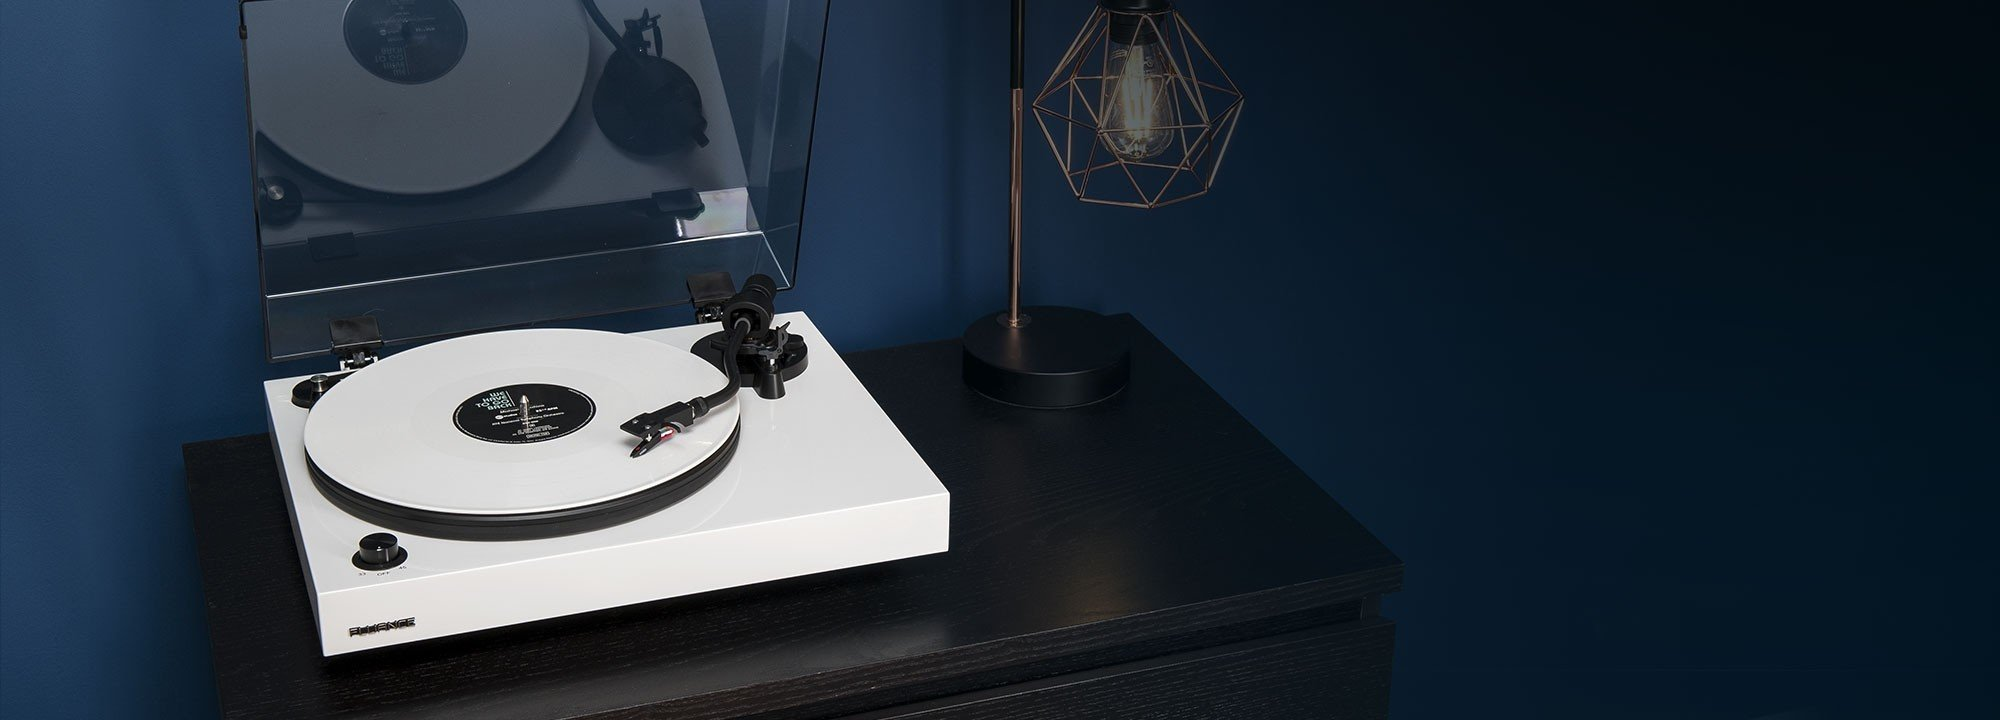 RT82 Reference High Fidelity Vinyl Turntable - Lifestyle